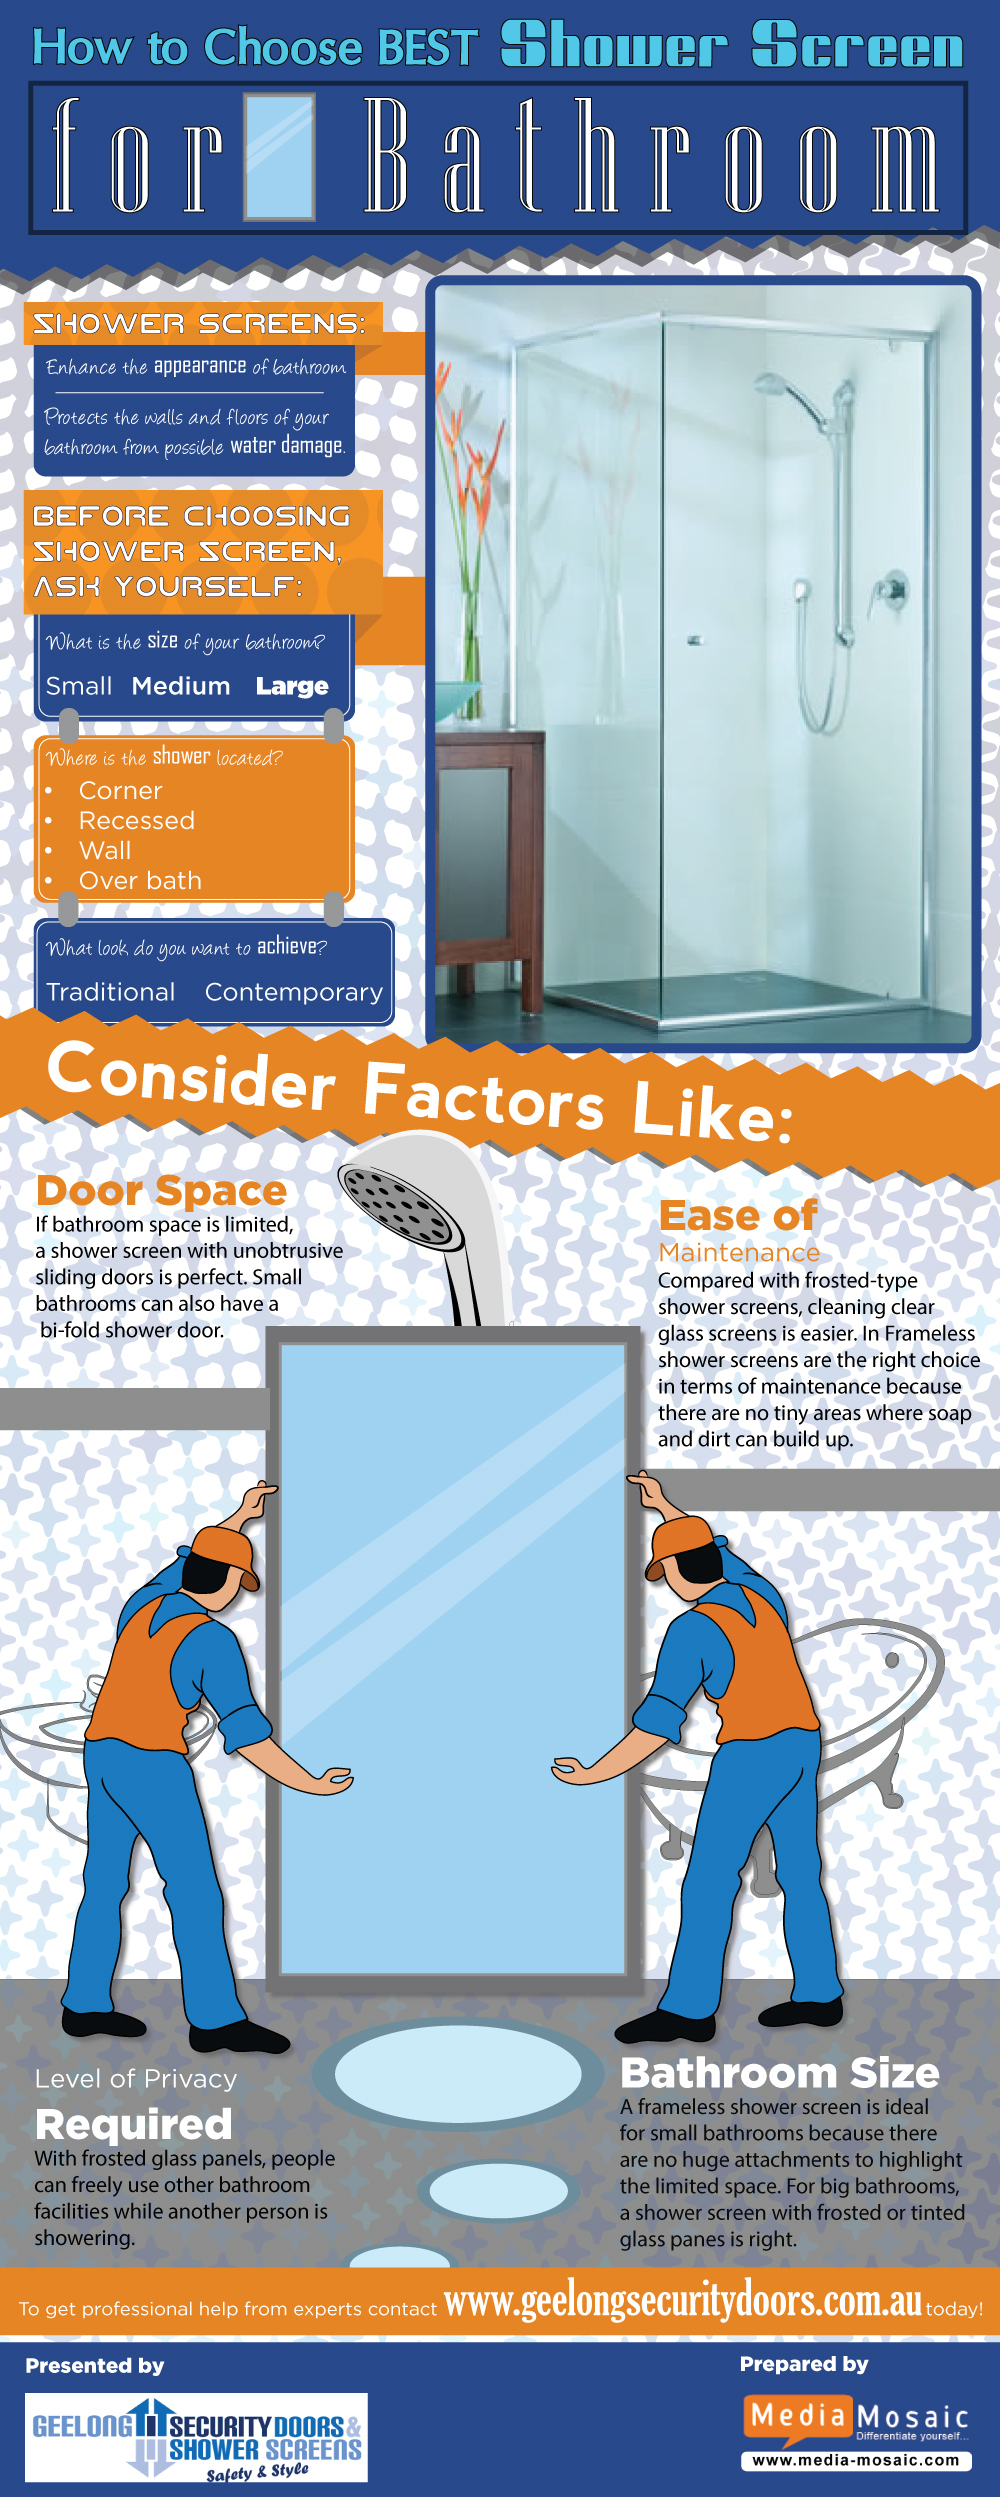 how-to-choose-best-shower-screen-for-bathroom